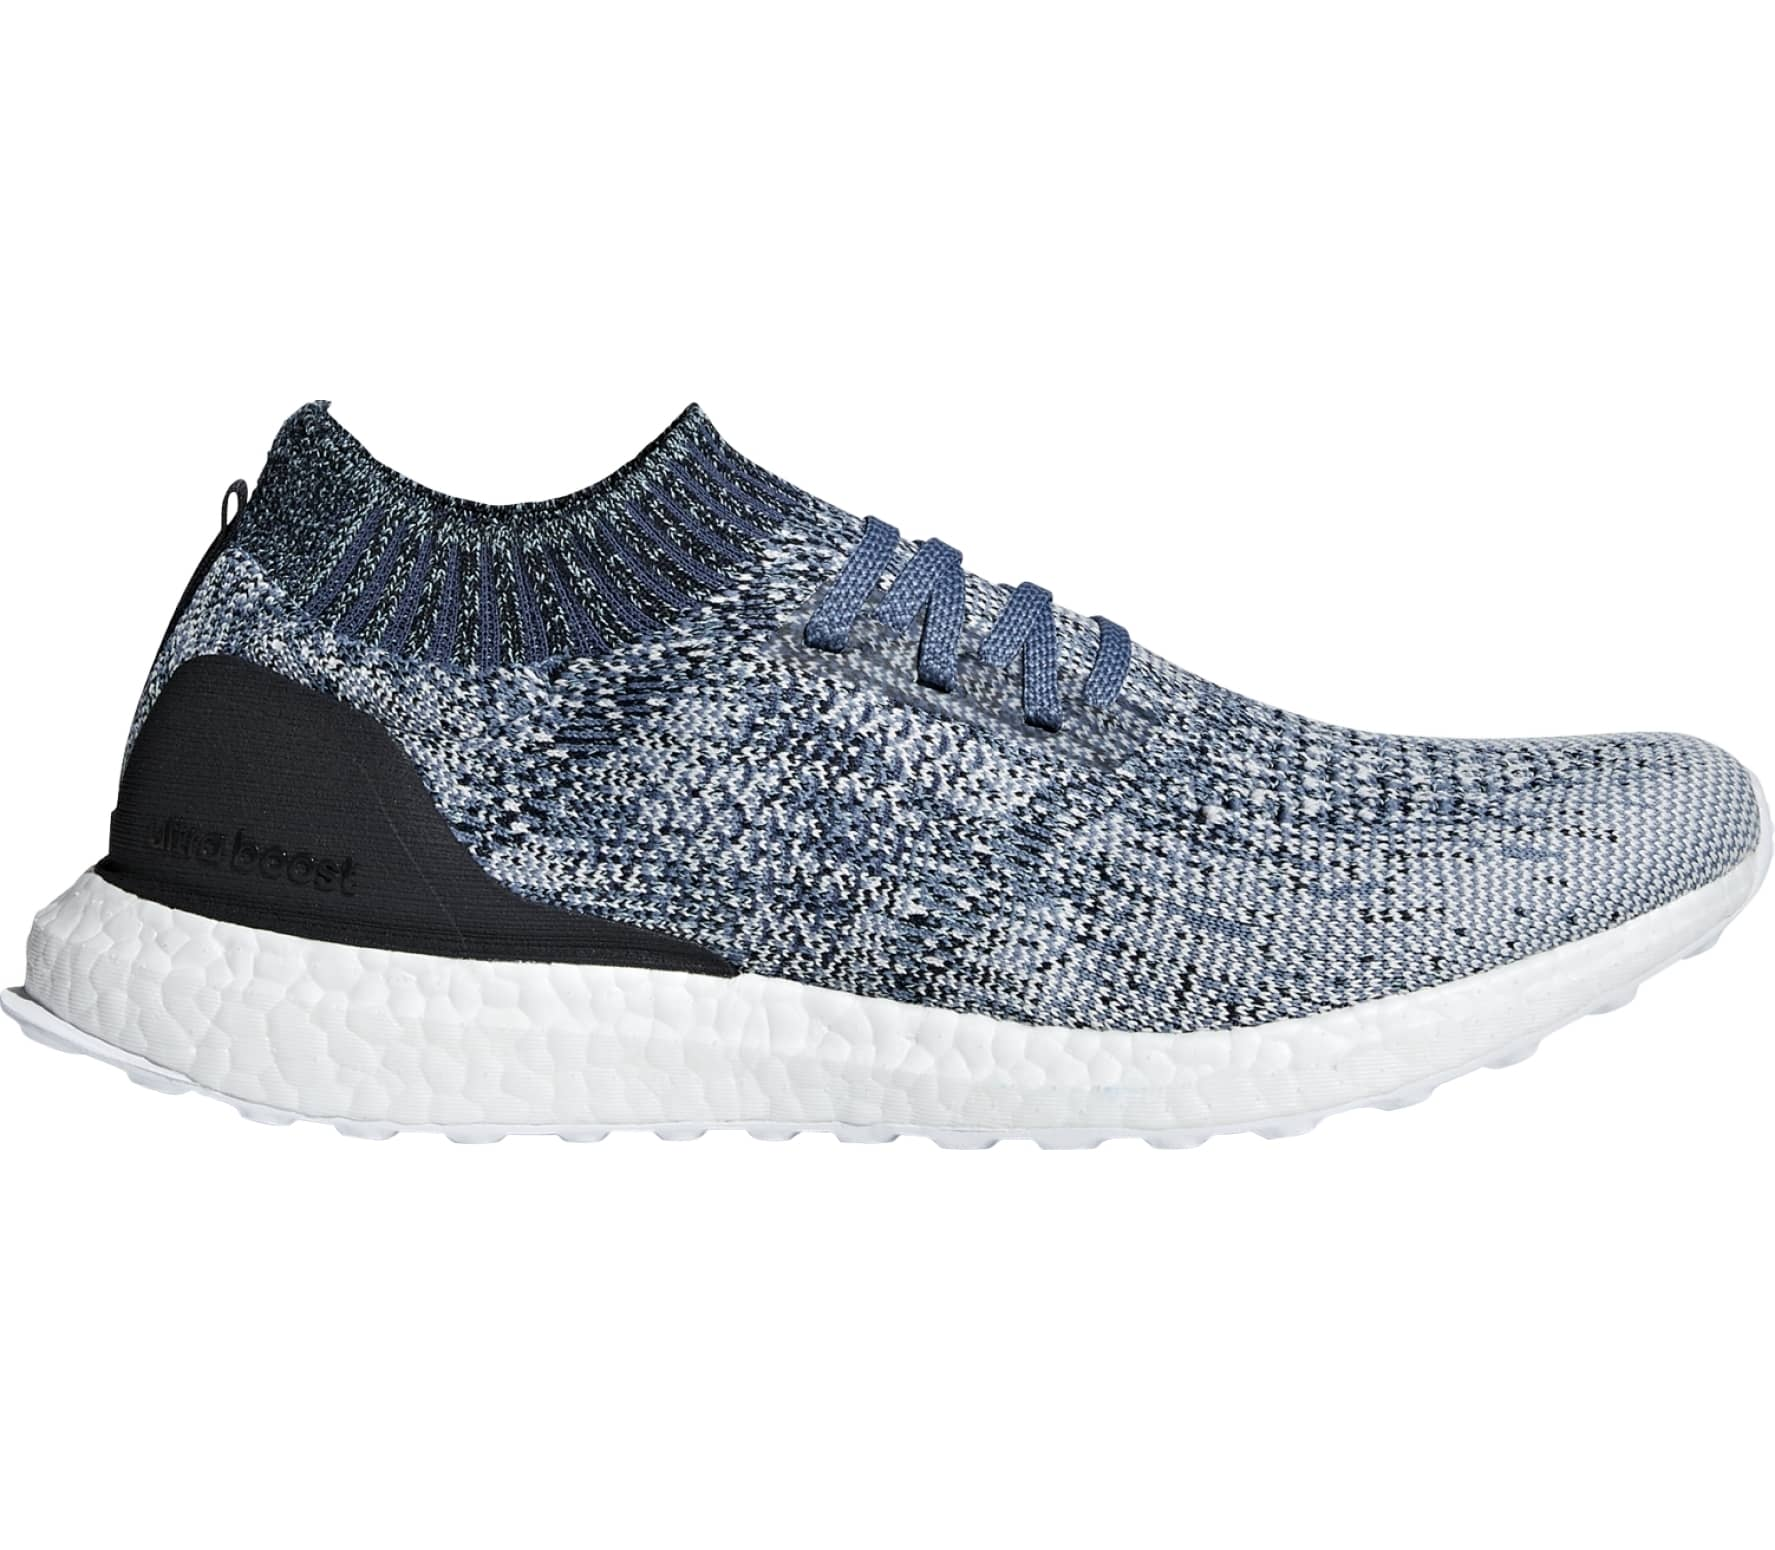 481d3a3a3f0 Adidas - UltraBOOST Uncaged Parley men s running shoes (grey blue ...